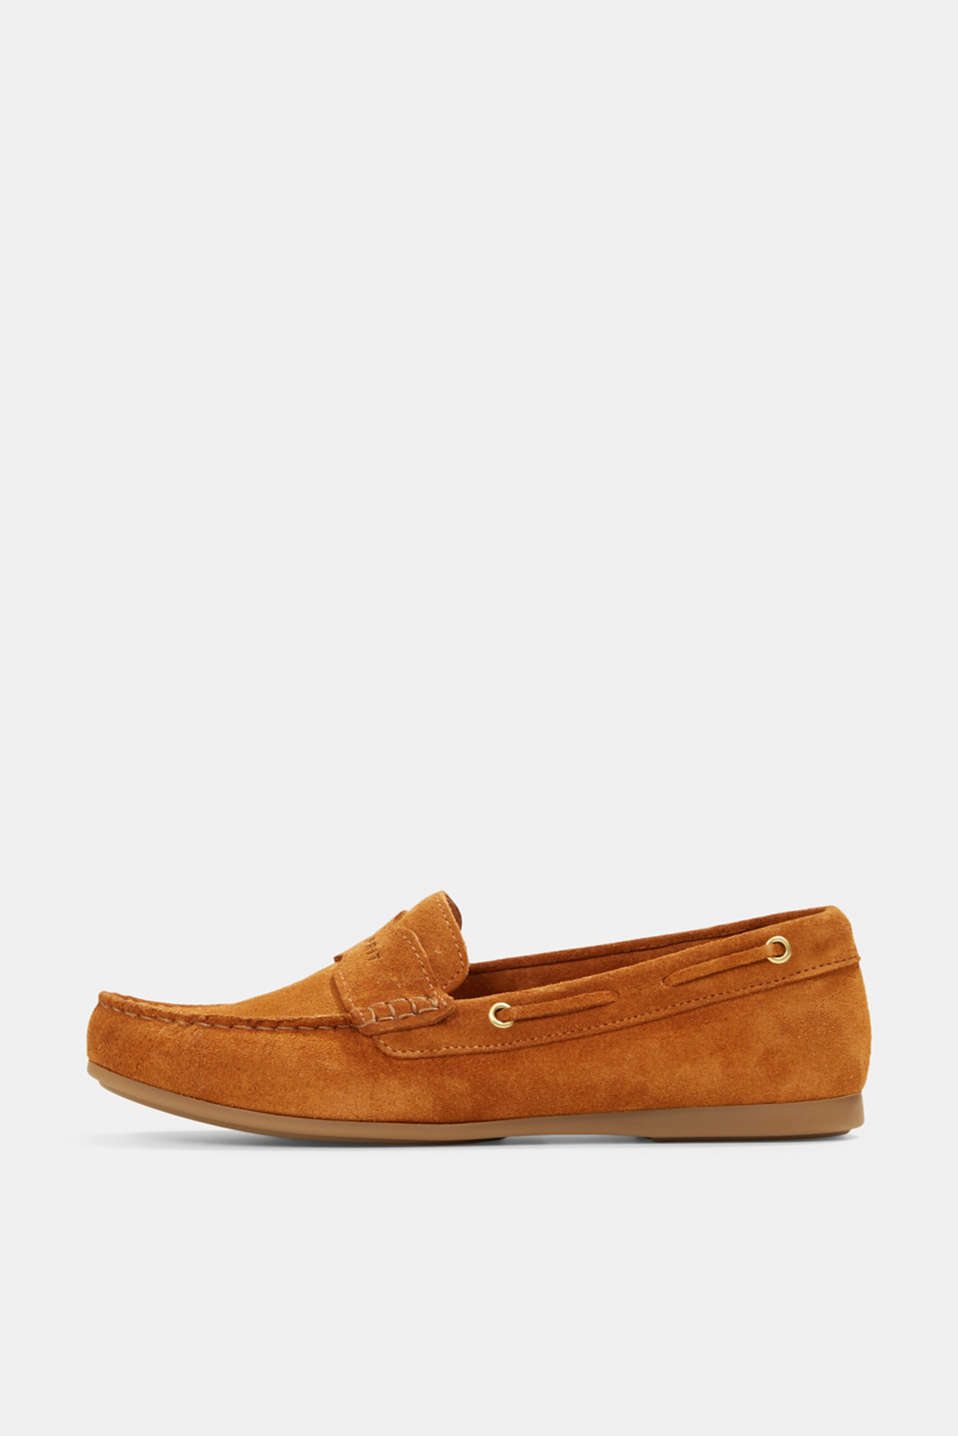 Esprit - Made of suede: Moccasin loafers